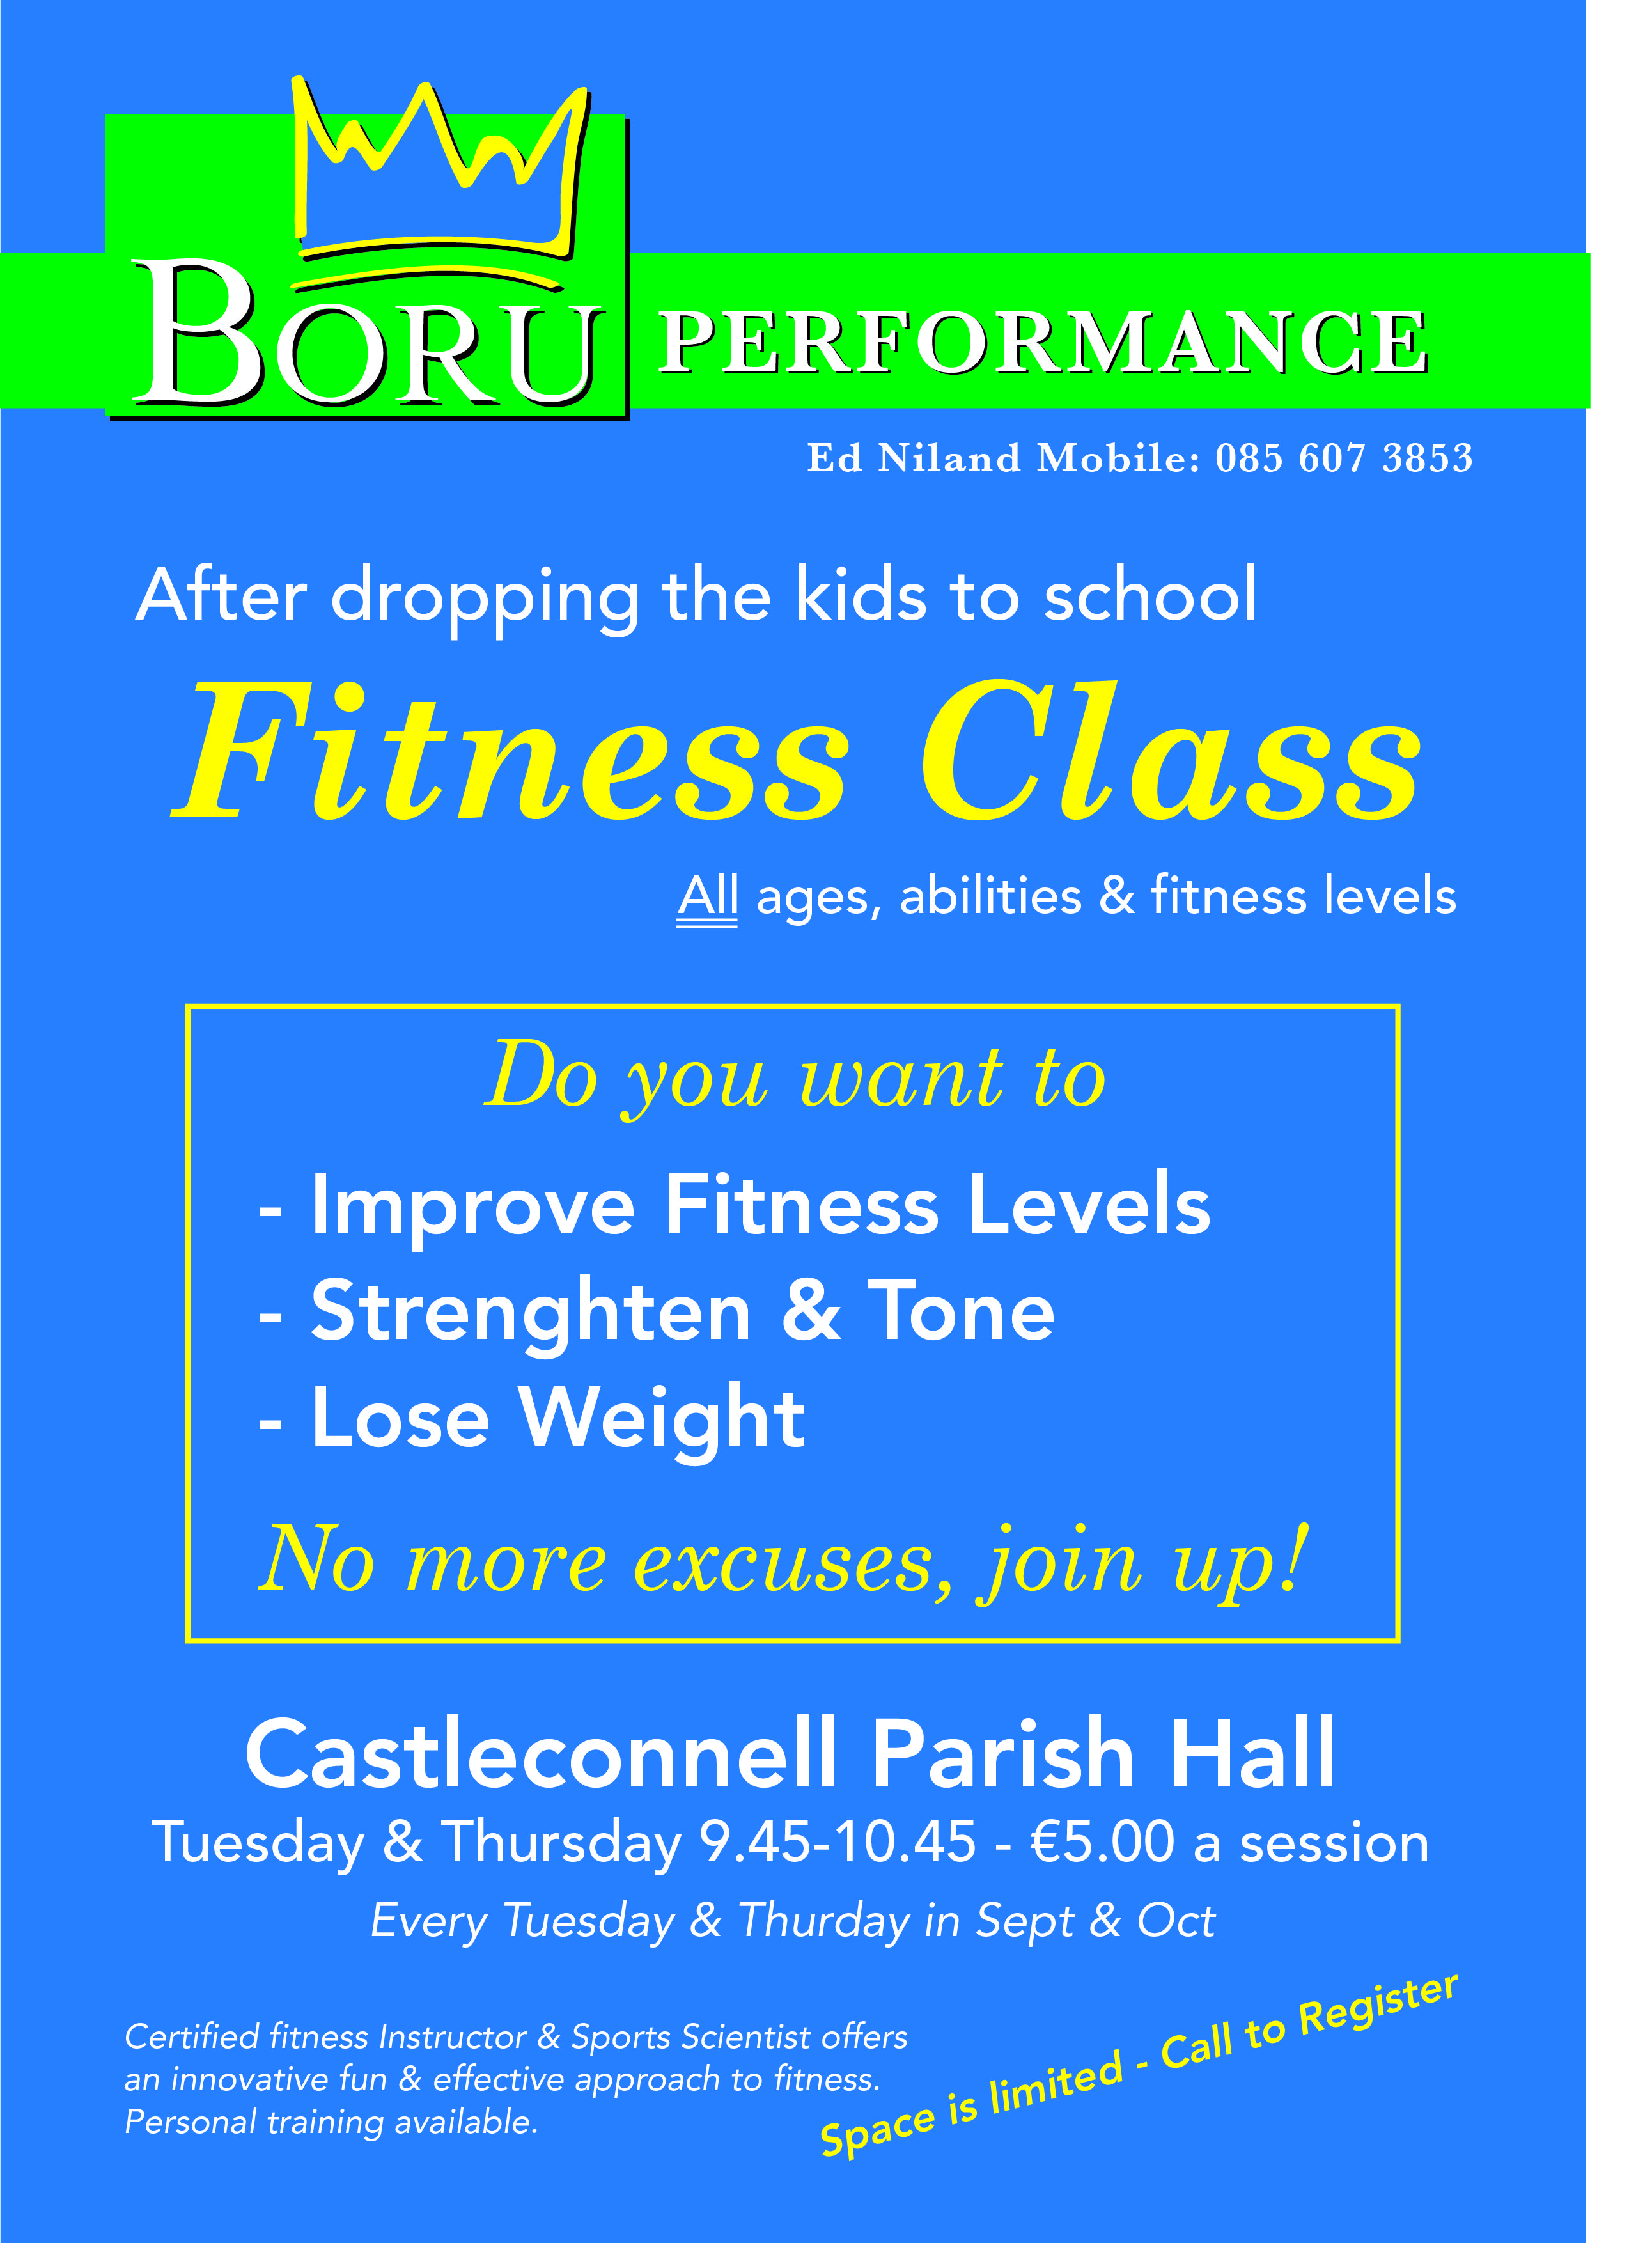 New Series Of Fitness Classes In Castleconnell Parish Hall In Sept